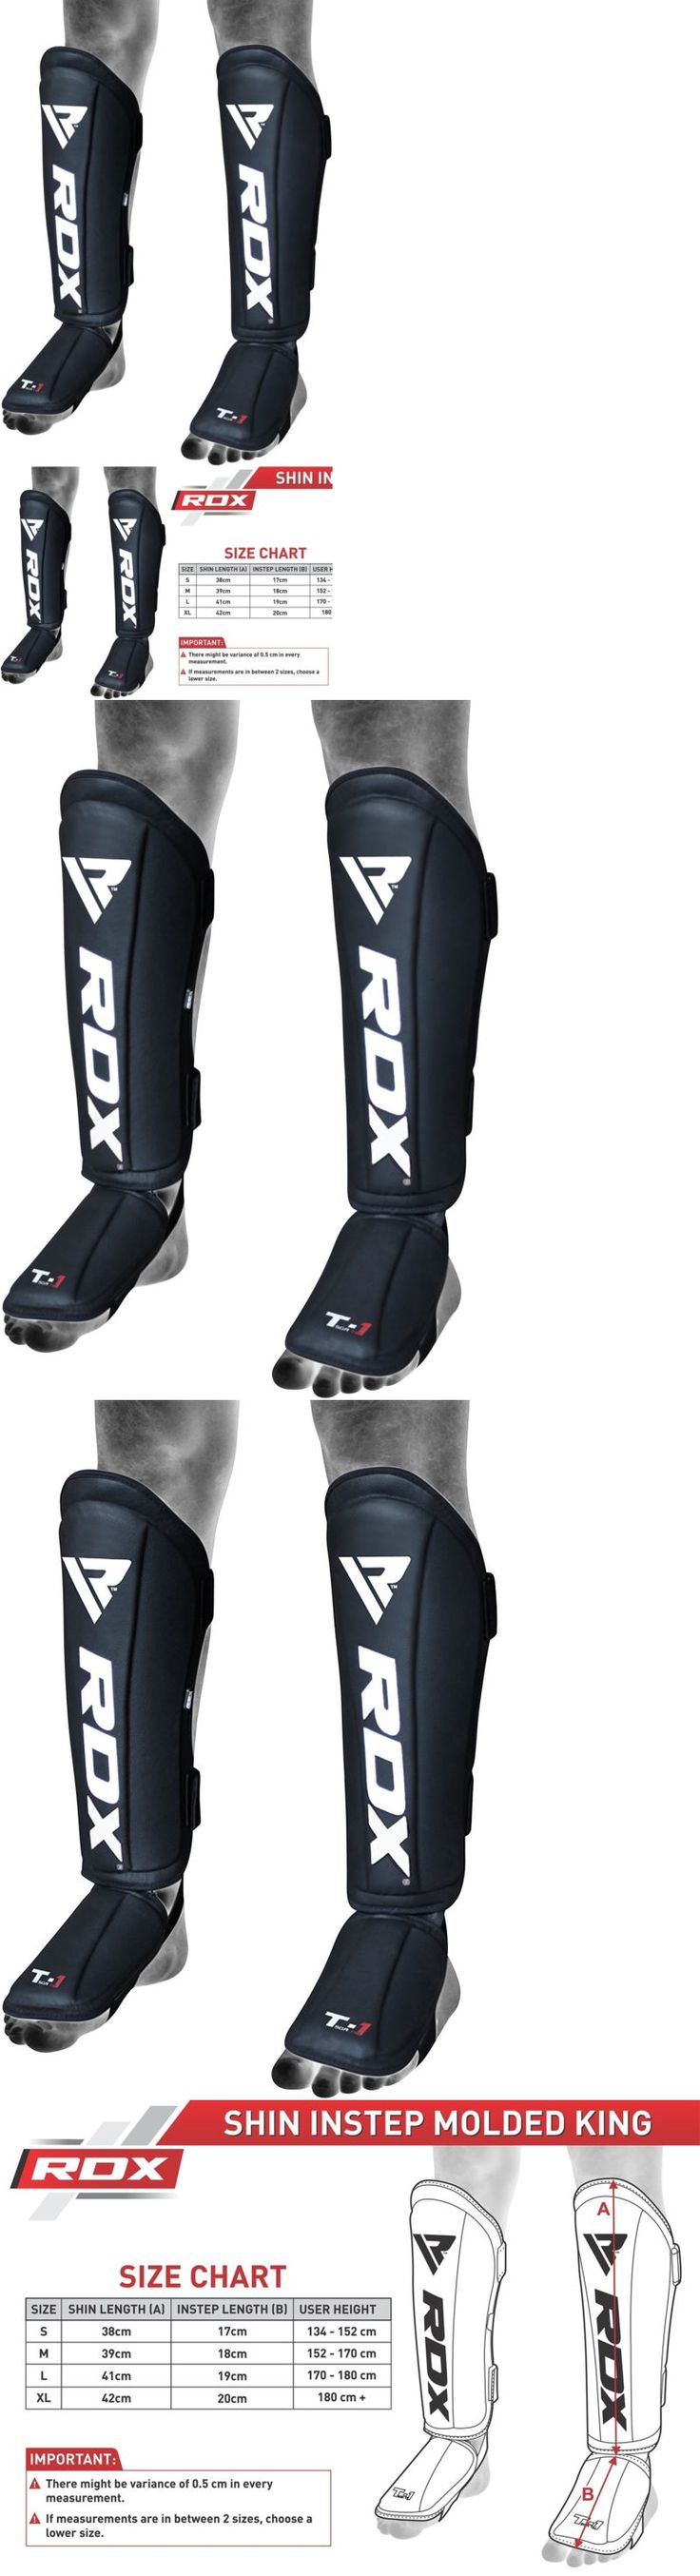 Shin Guards 179782: Rdx Mma Shin Instep Guard Leg Pads Protective Muay Thai Boxing Training Kickboxi -> BUY IT NOW ONLY: $59.12 on eBay!